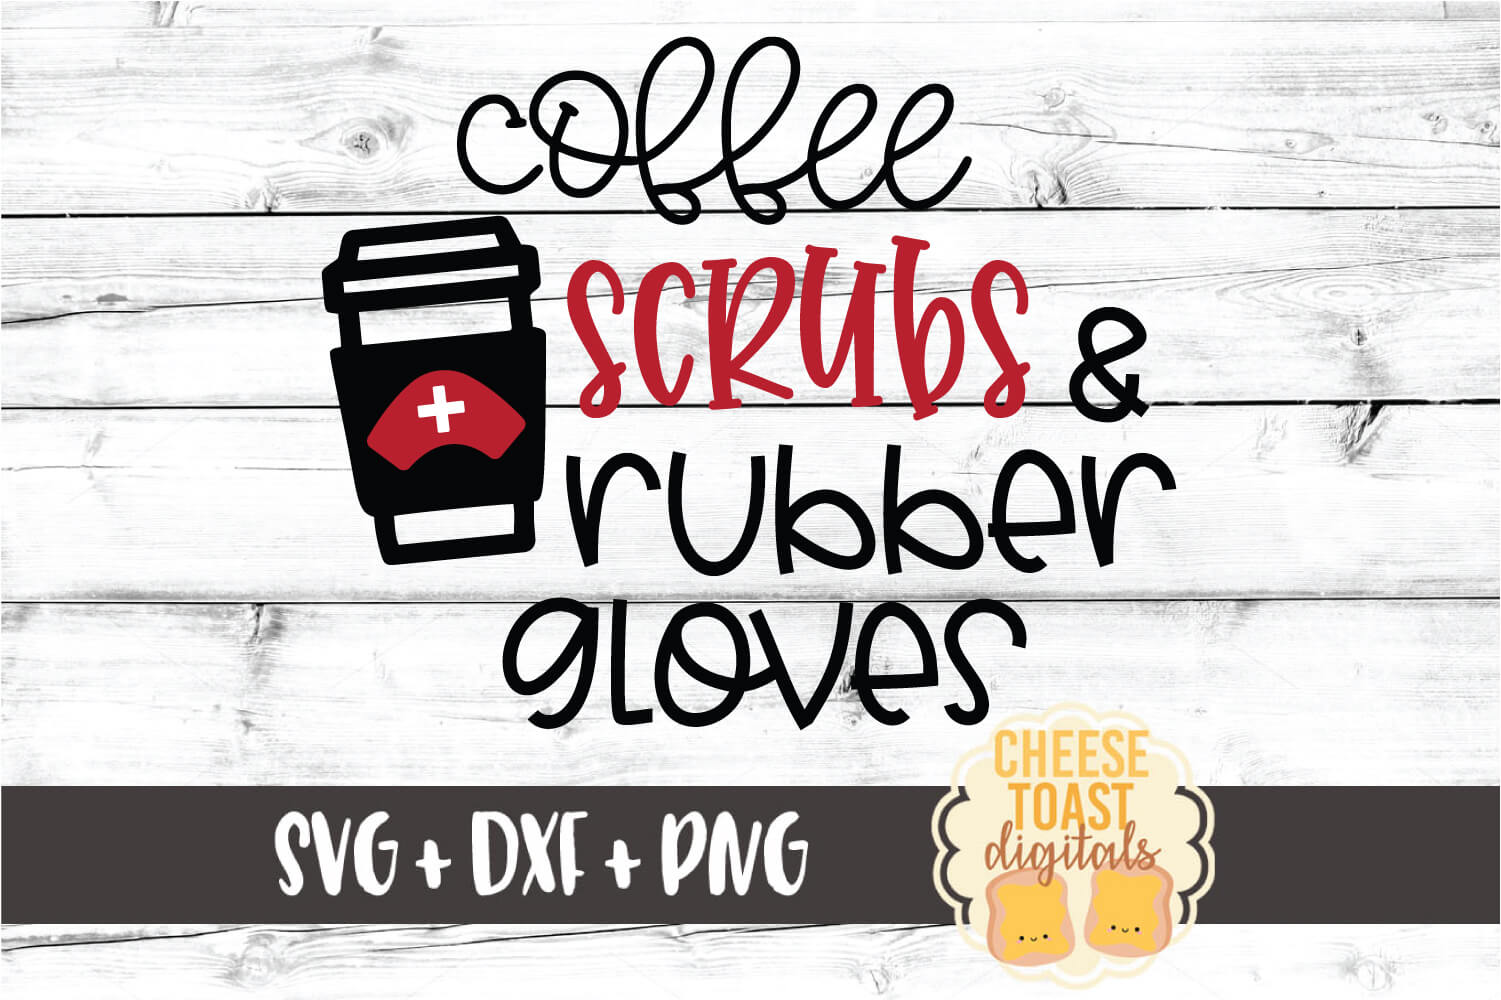 Coffee Scrubs and Rubber Gloves - Nurse SVG PNG DXF Files example image 2